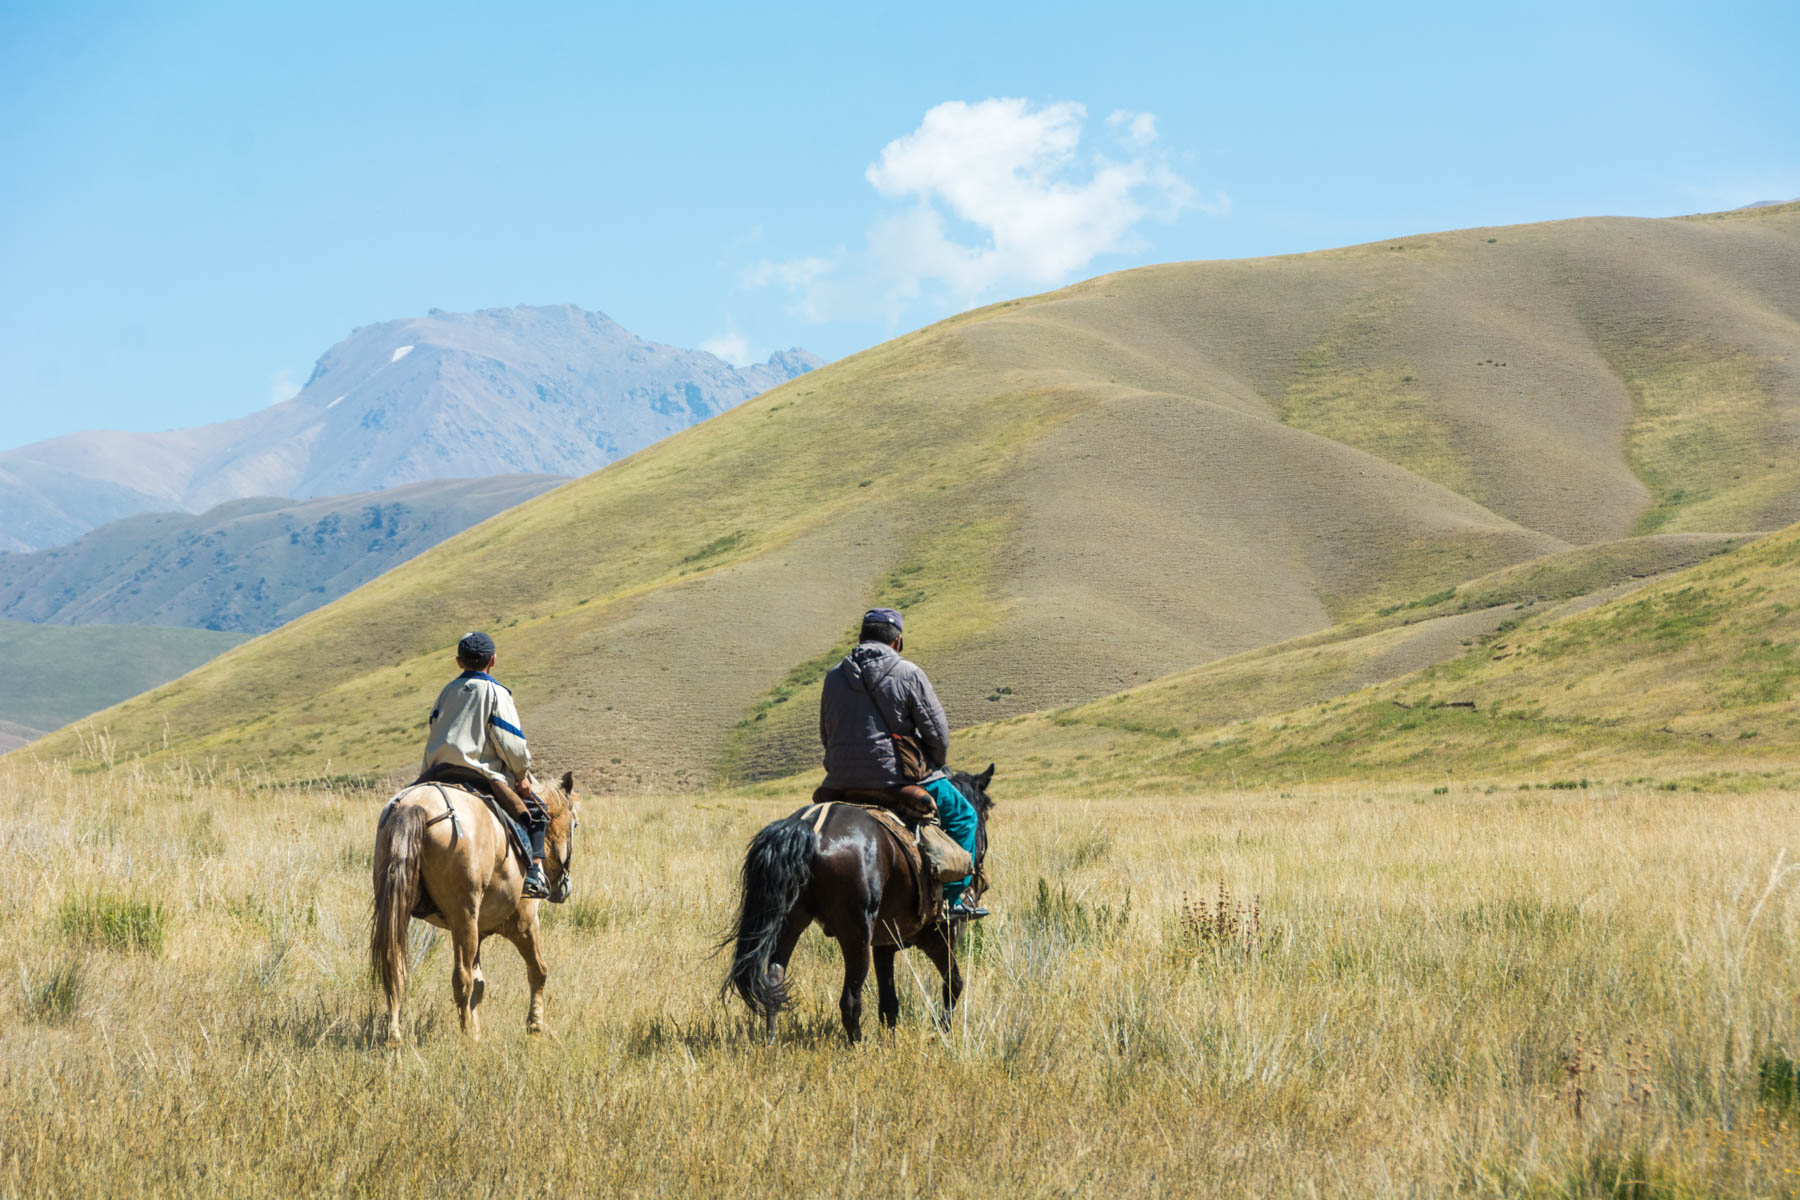 A father and son riding horses in Kyrgyzstan - Lost With Purpose